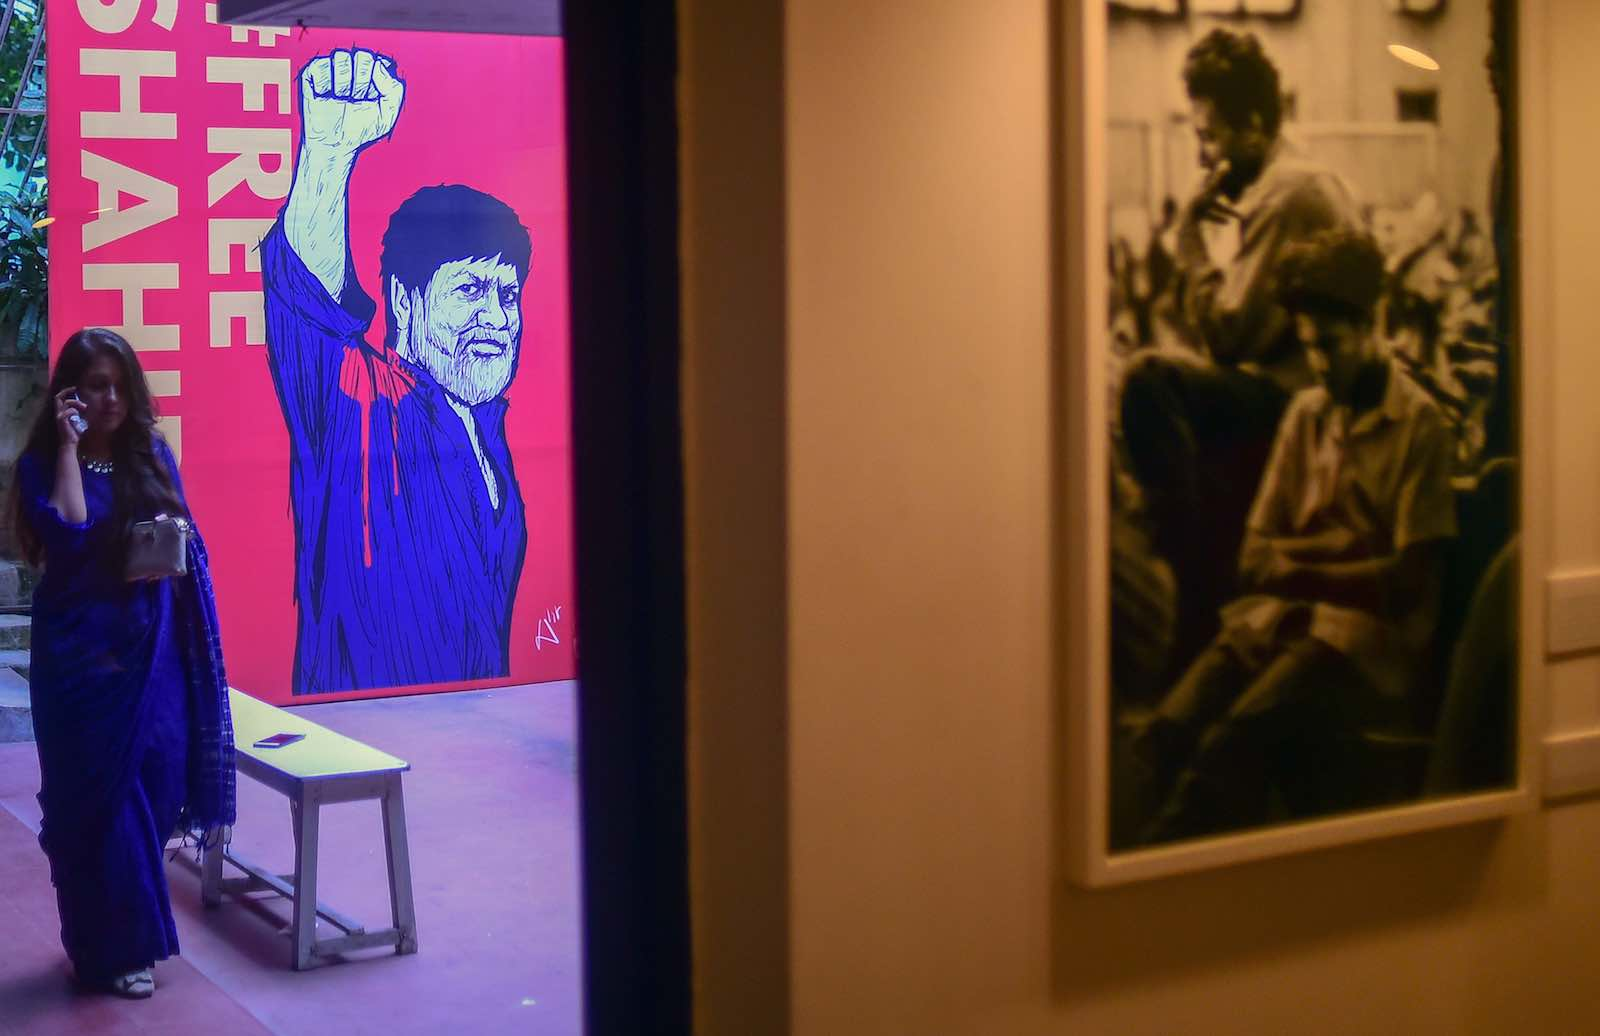 "An exhibition ""A Struggle for Democracy"" featuring photographs by imprisoned photojournalist Shahidul Alam in Dhaka, 10 September 2018 (Photo: Munir Uz Zaman via Getty)"